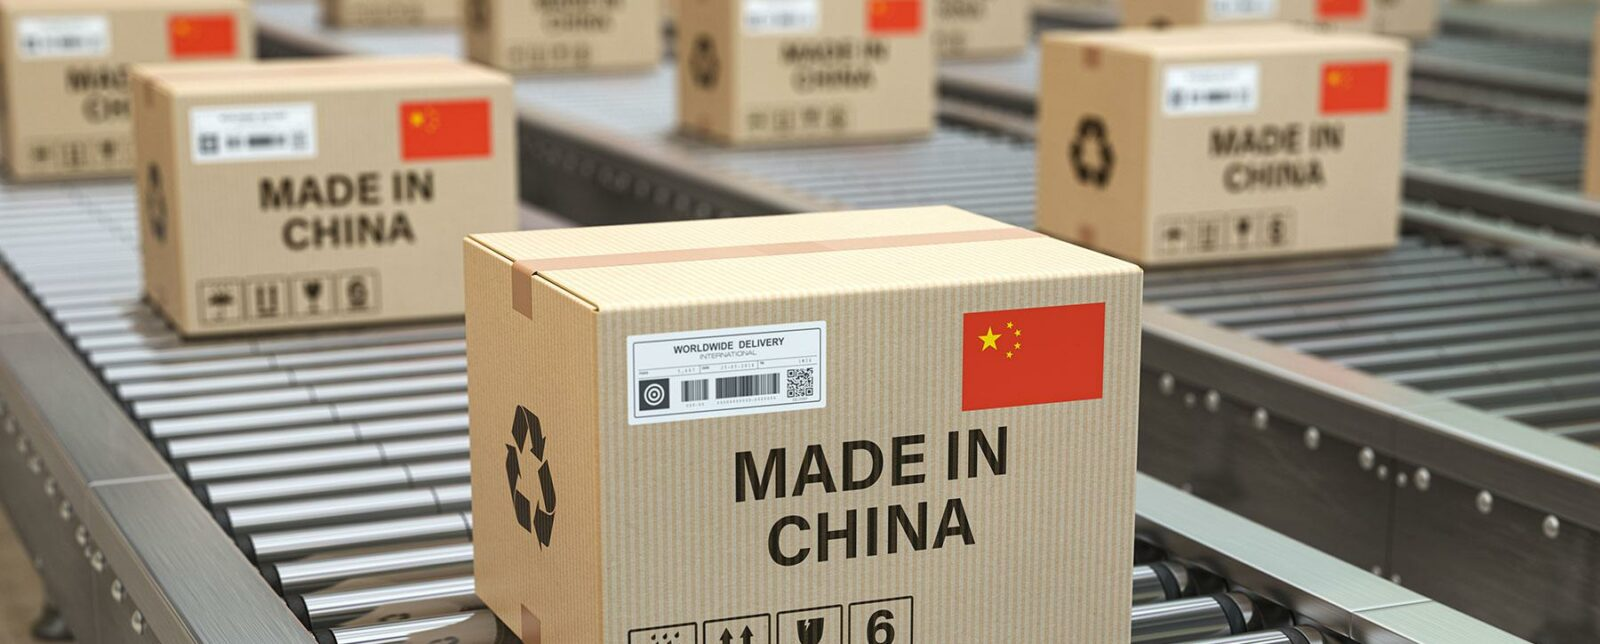 8 Tips for Sustaining the Development of Your Suppliers in China